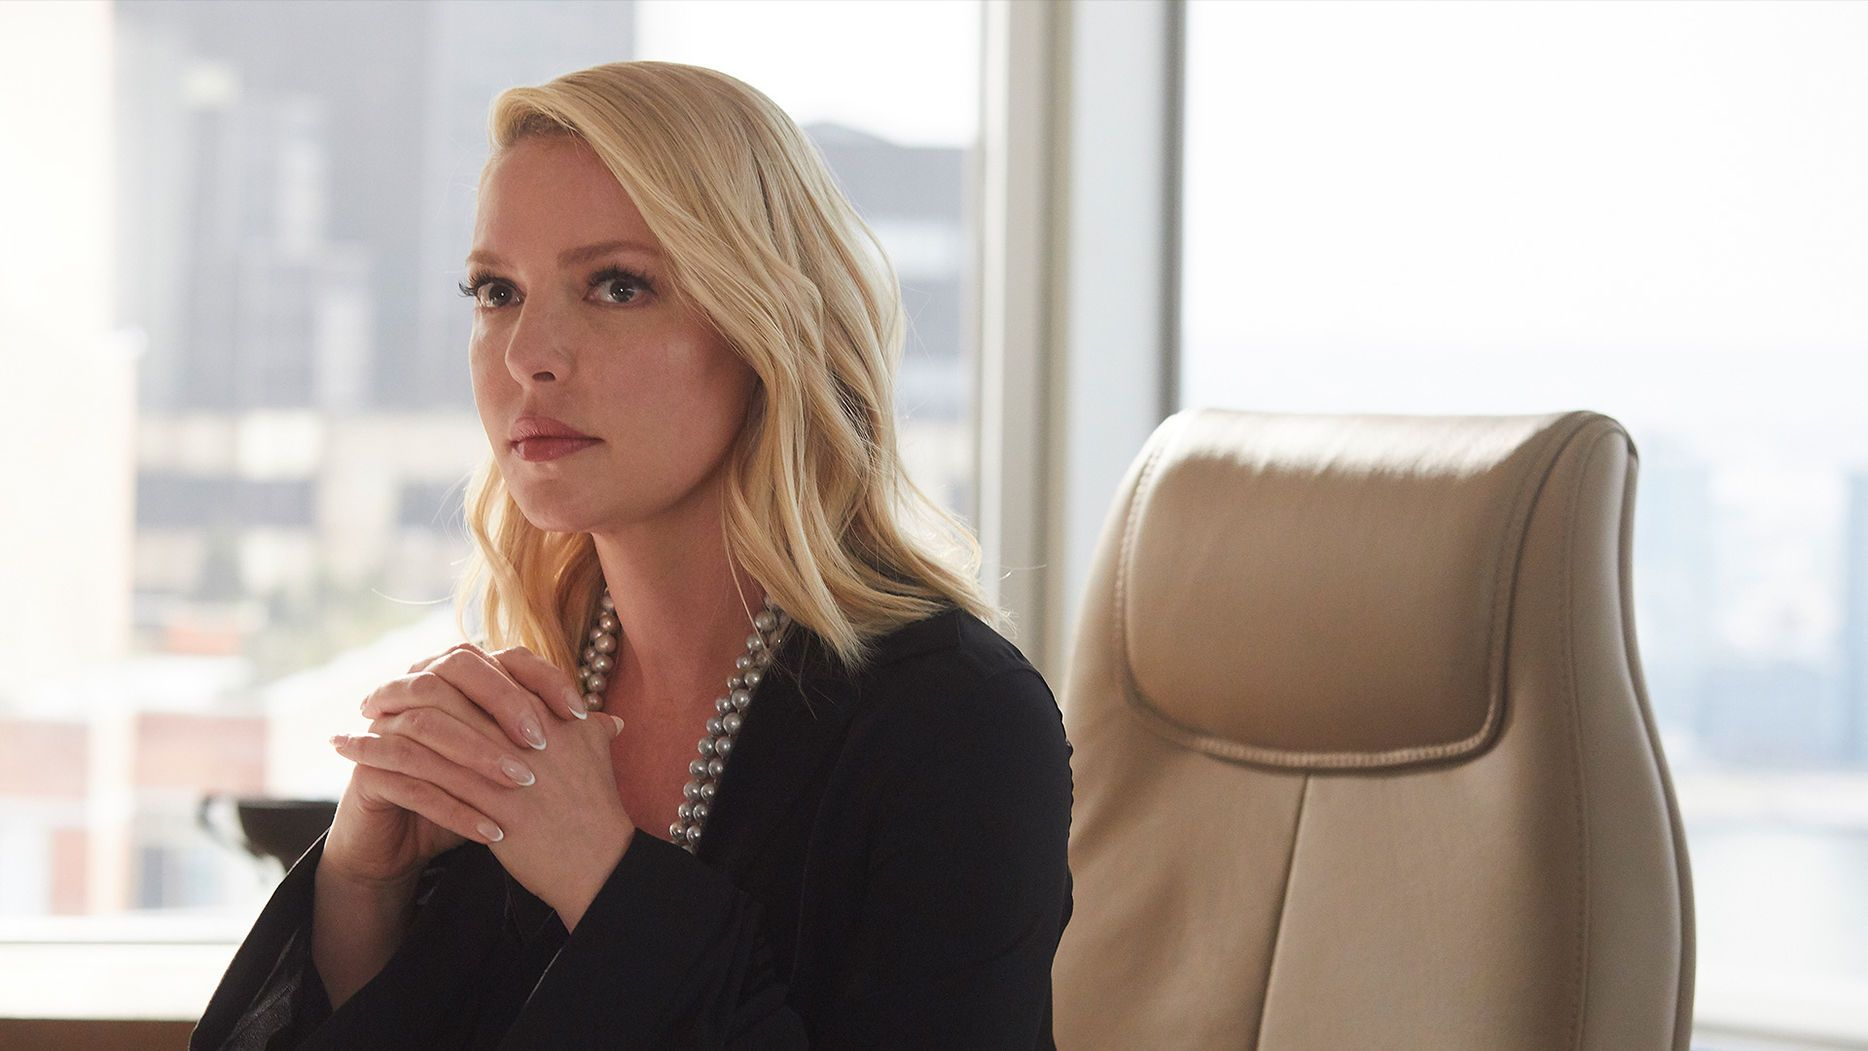 katherine heigl stars as samantha wheeler in suits season 8 episode 5 good mudding katherine heigl suits season suits series katherine heigl suits season